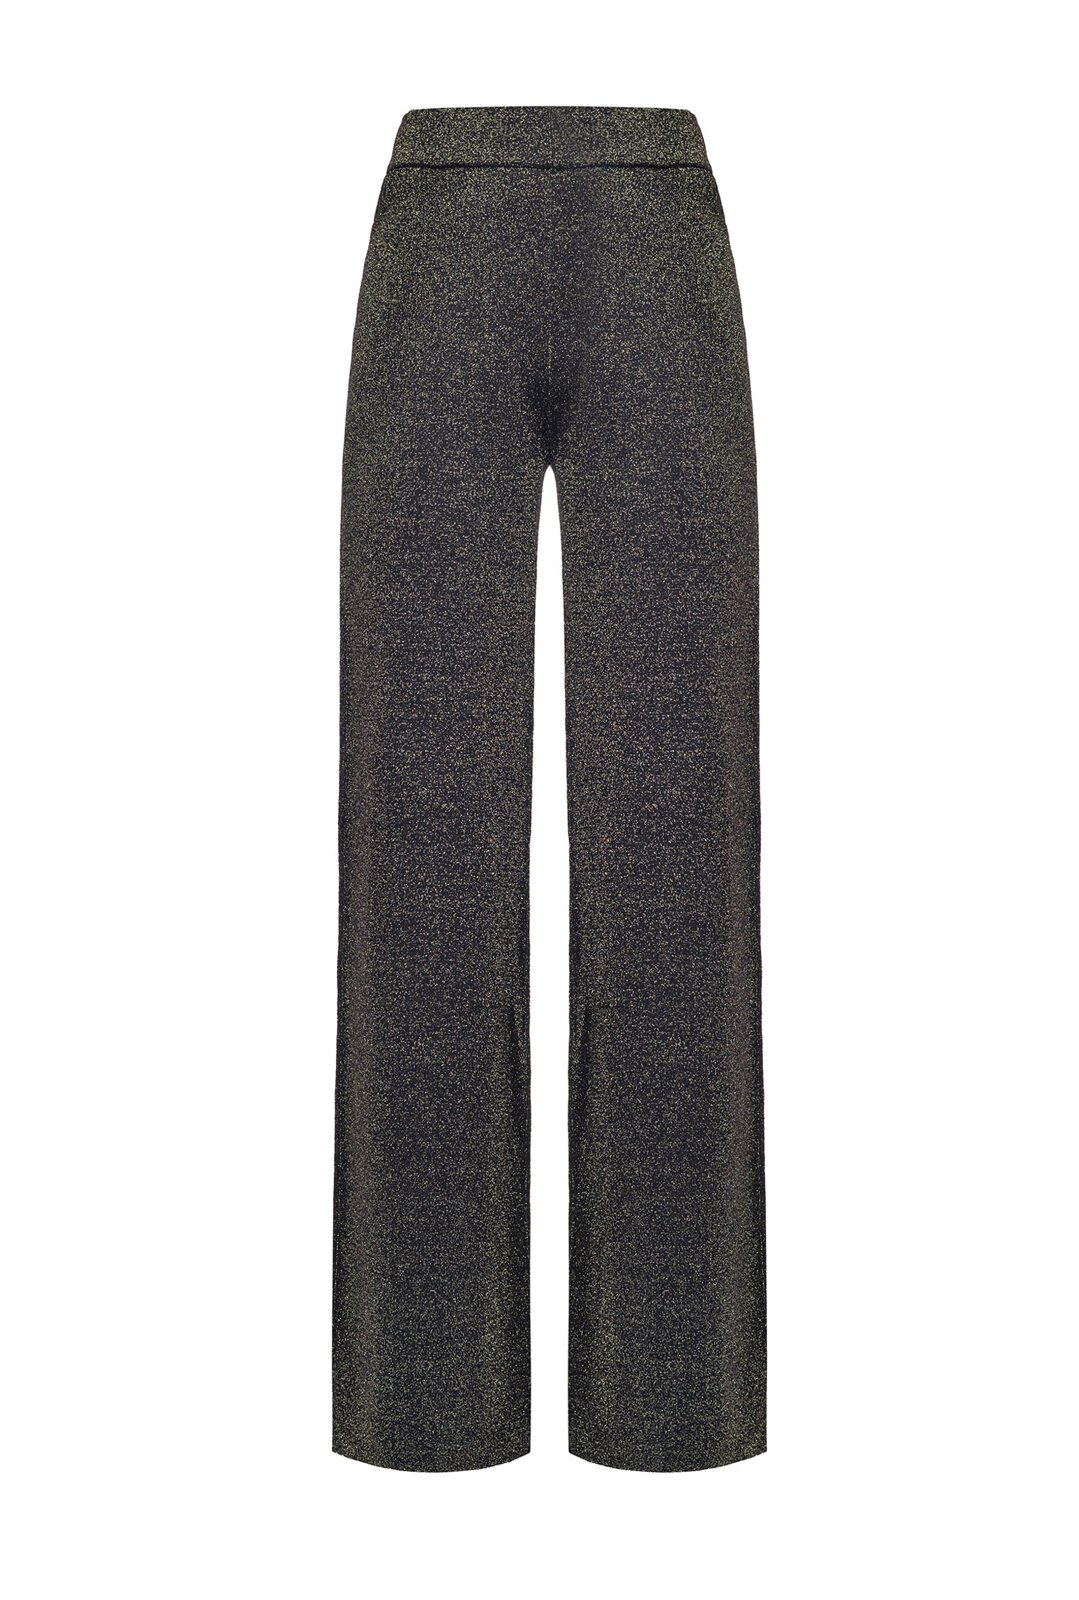 Lurex Knitted Pants - Pinko